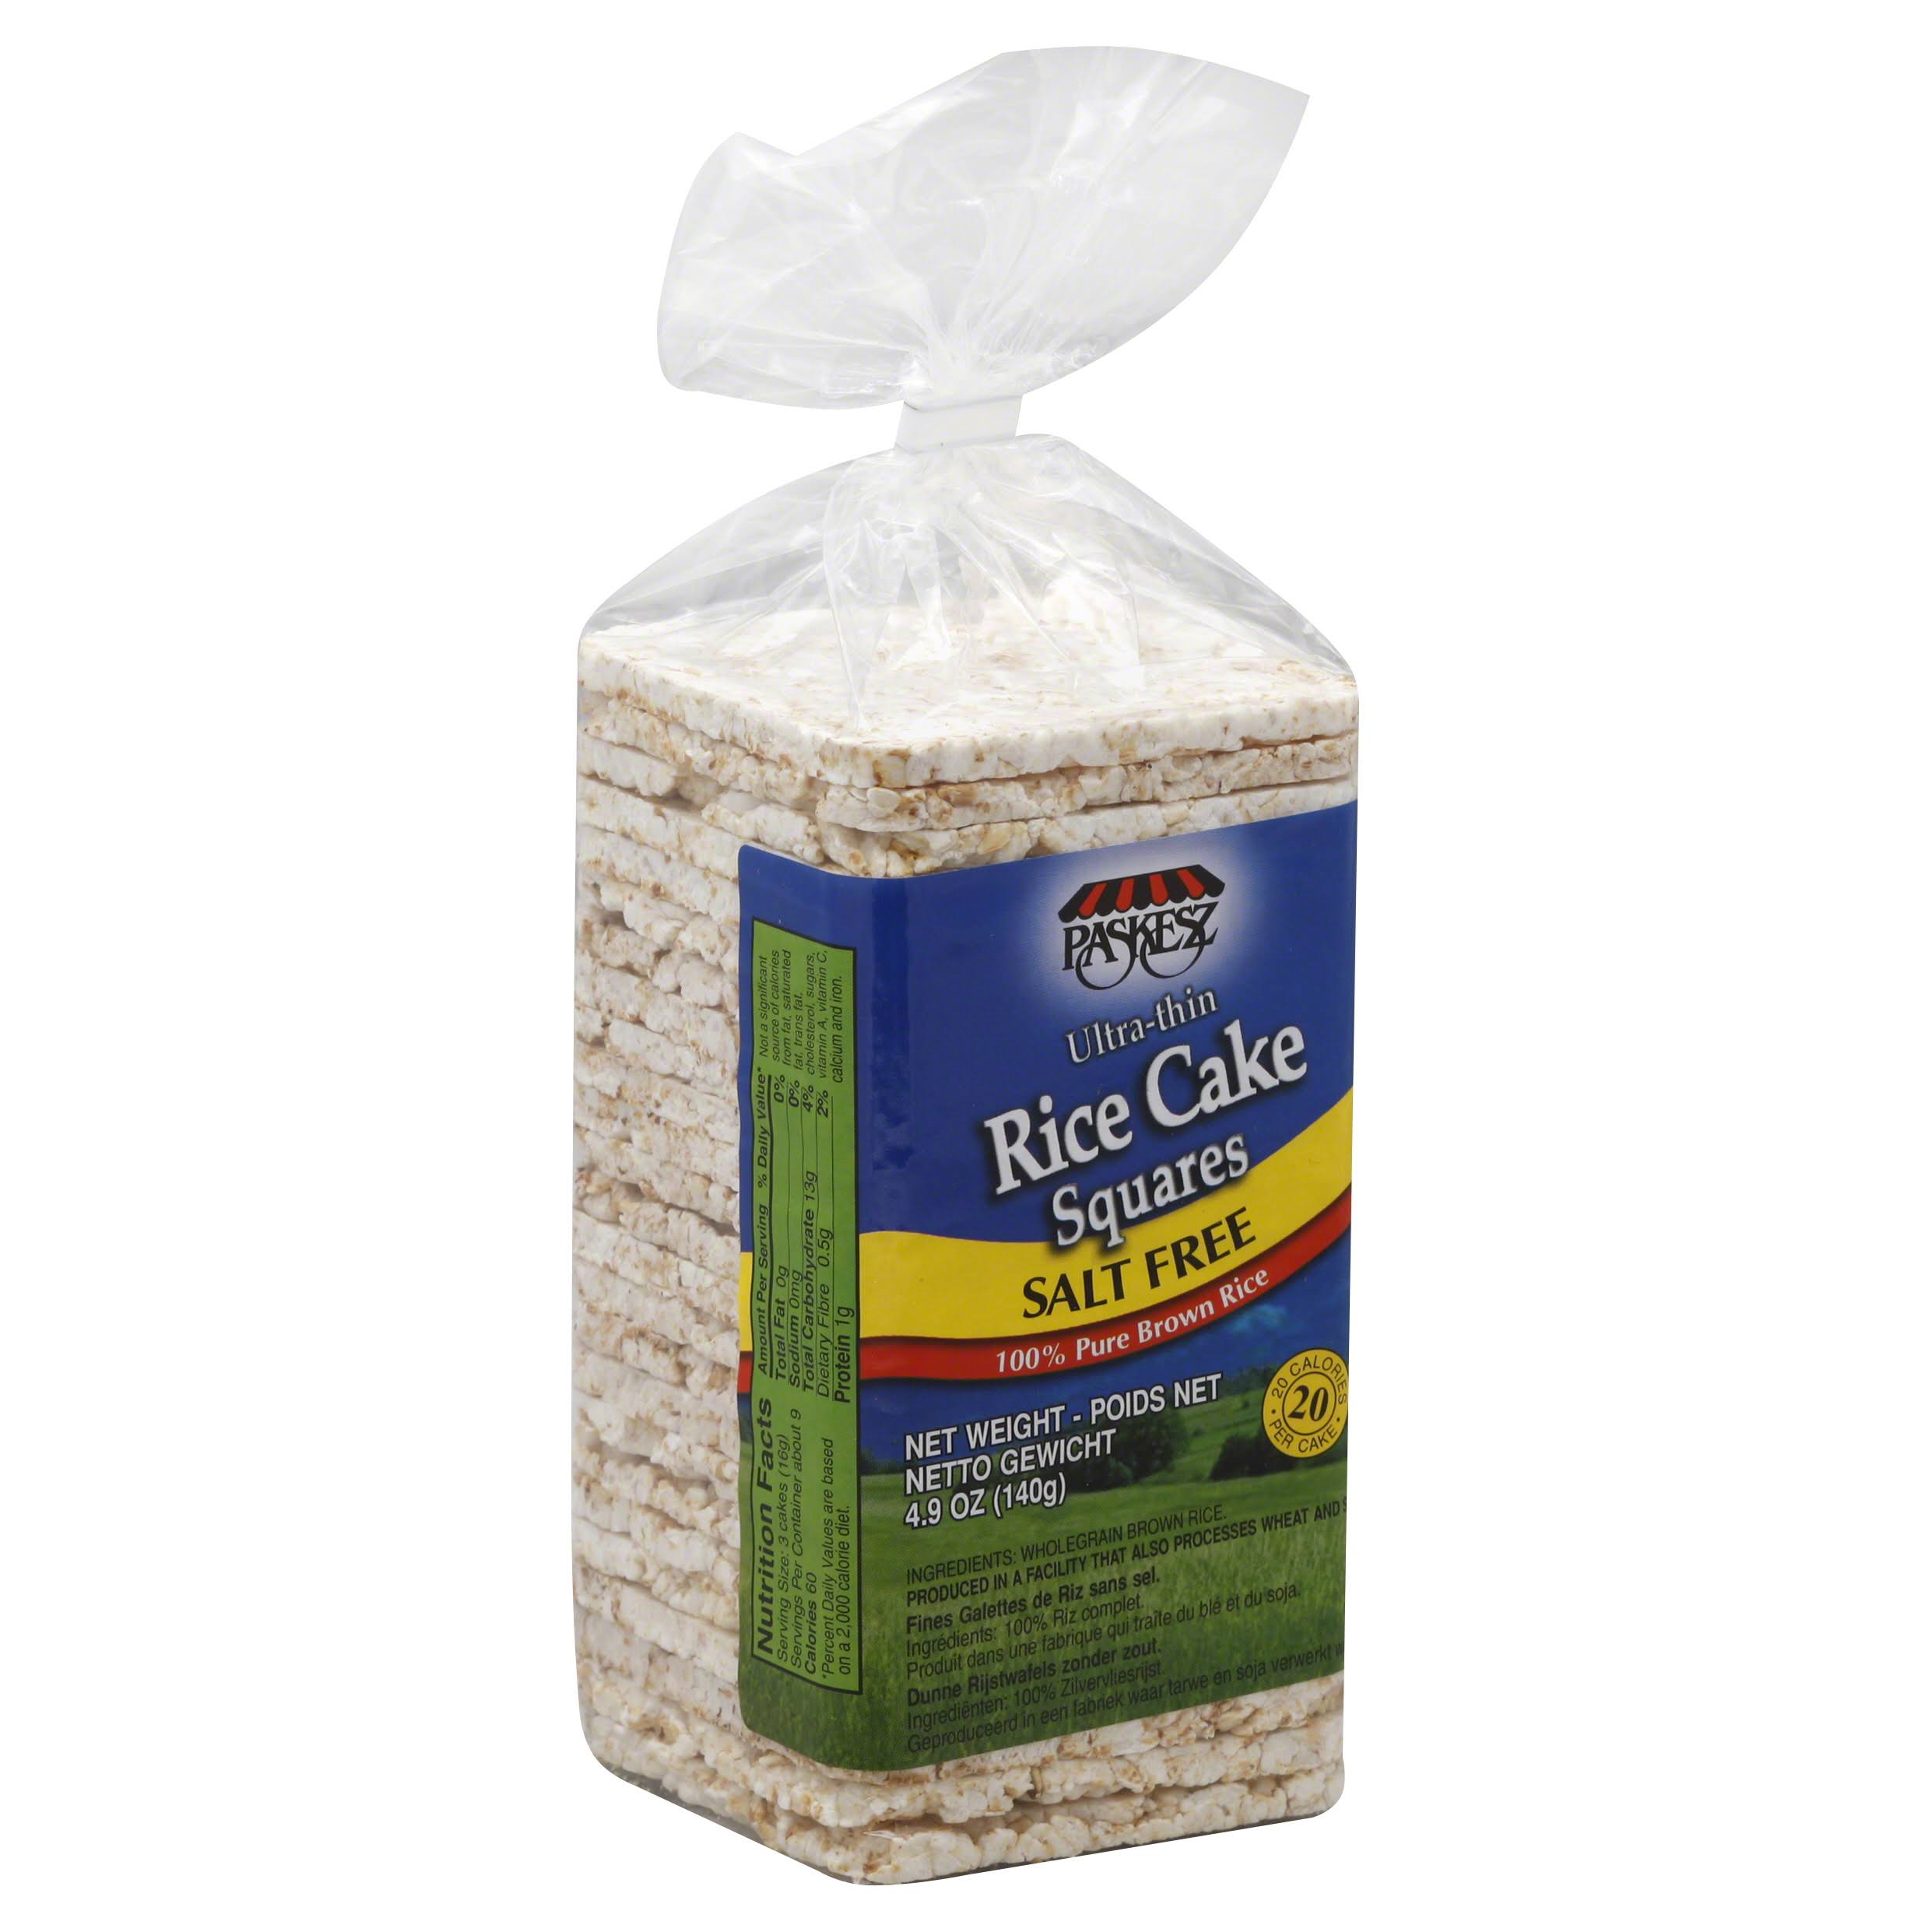 Paskesz Rice Cake Squares, Ultra-Thin, Salt Free - 4.9 oz